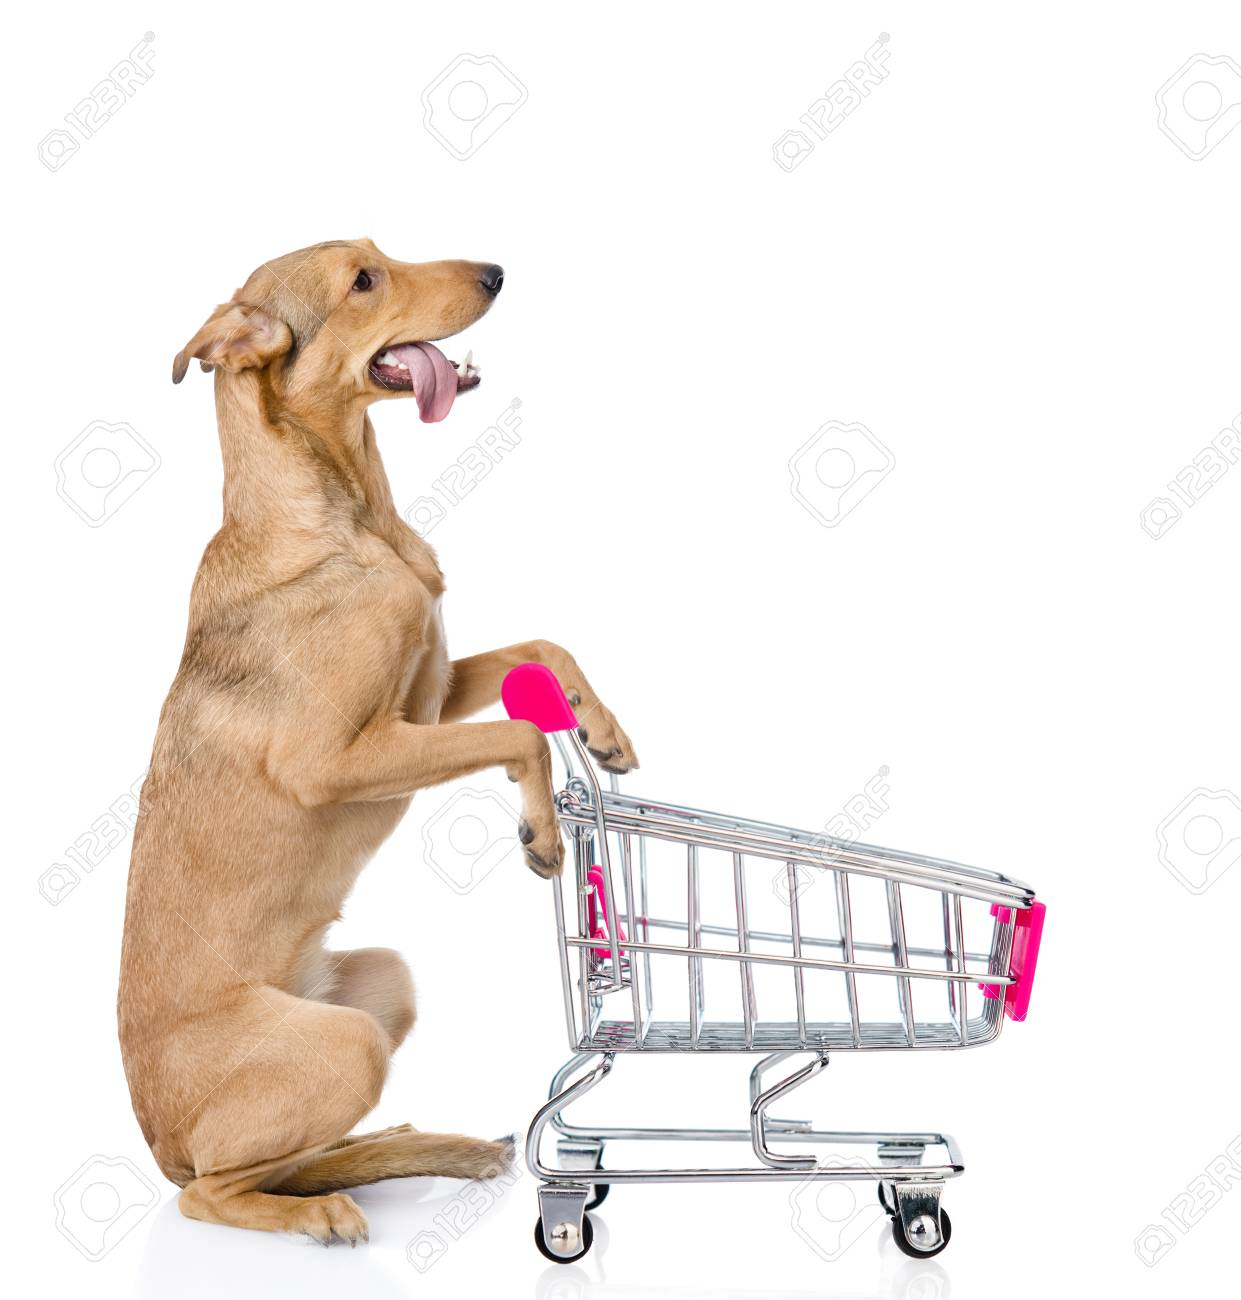 Dog with shopping trolley looking up  isolated on white background